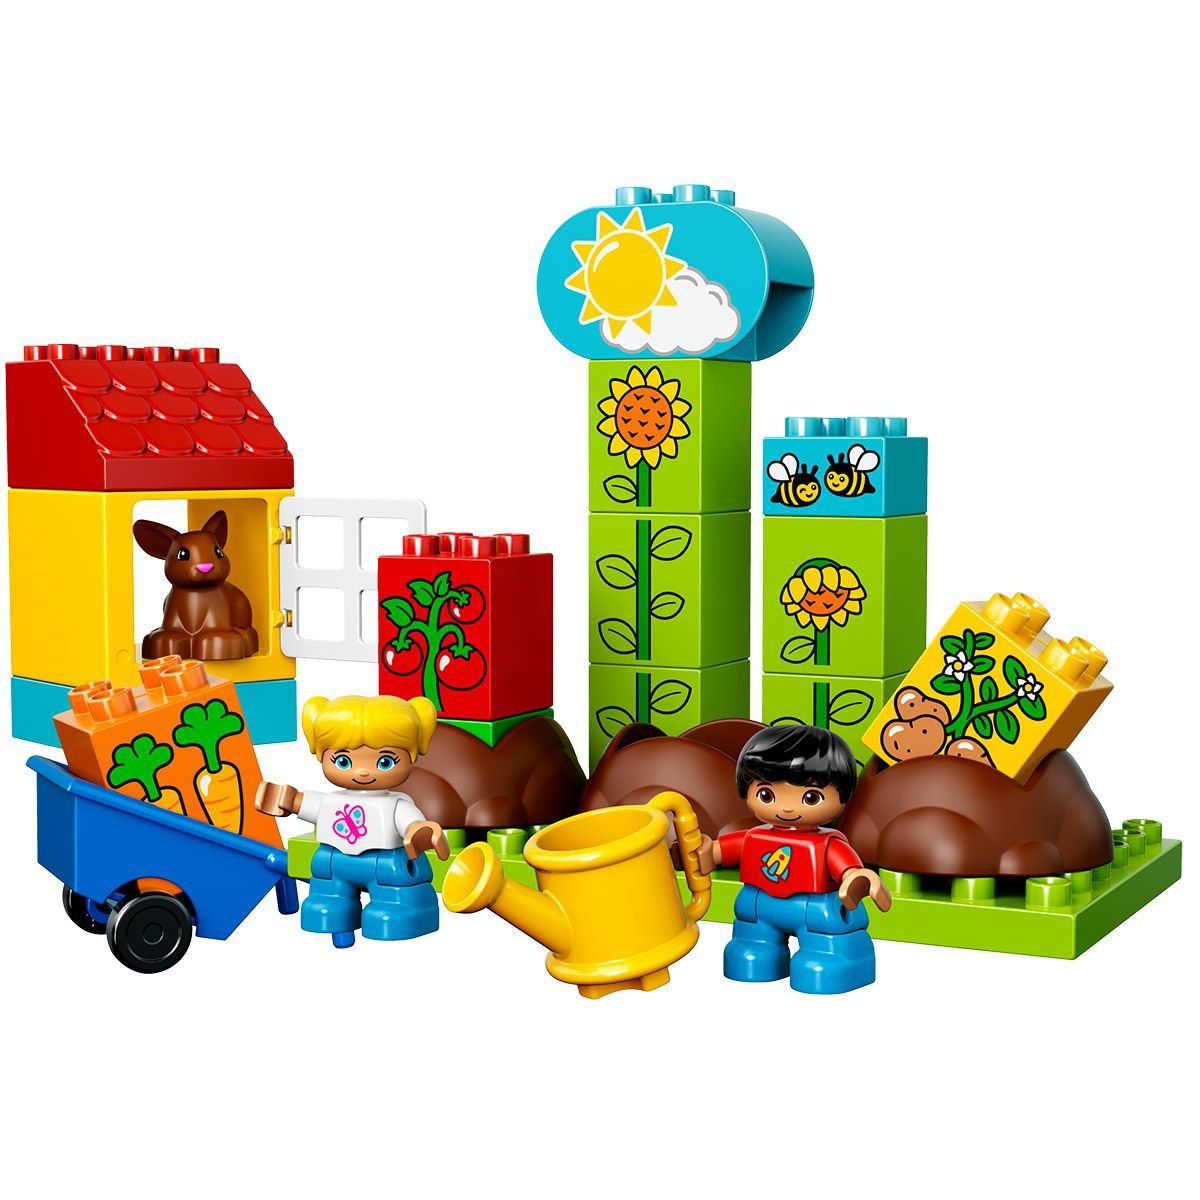 Charming LEGO Duplo My First Garden LEGO Duplo My First Garden